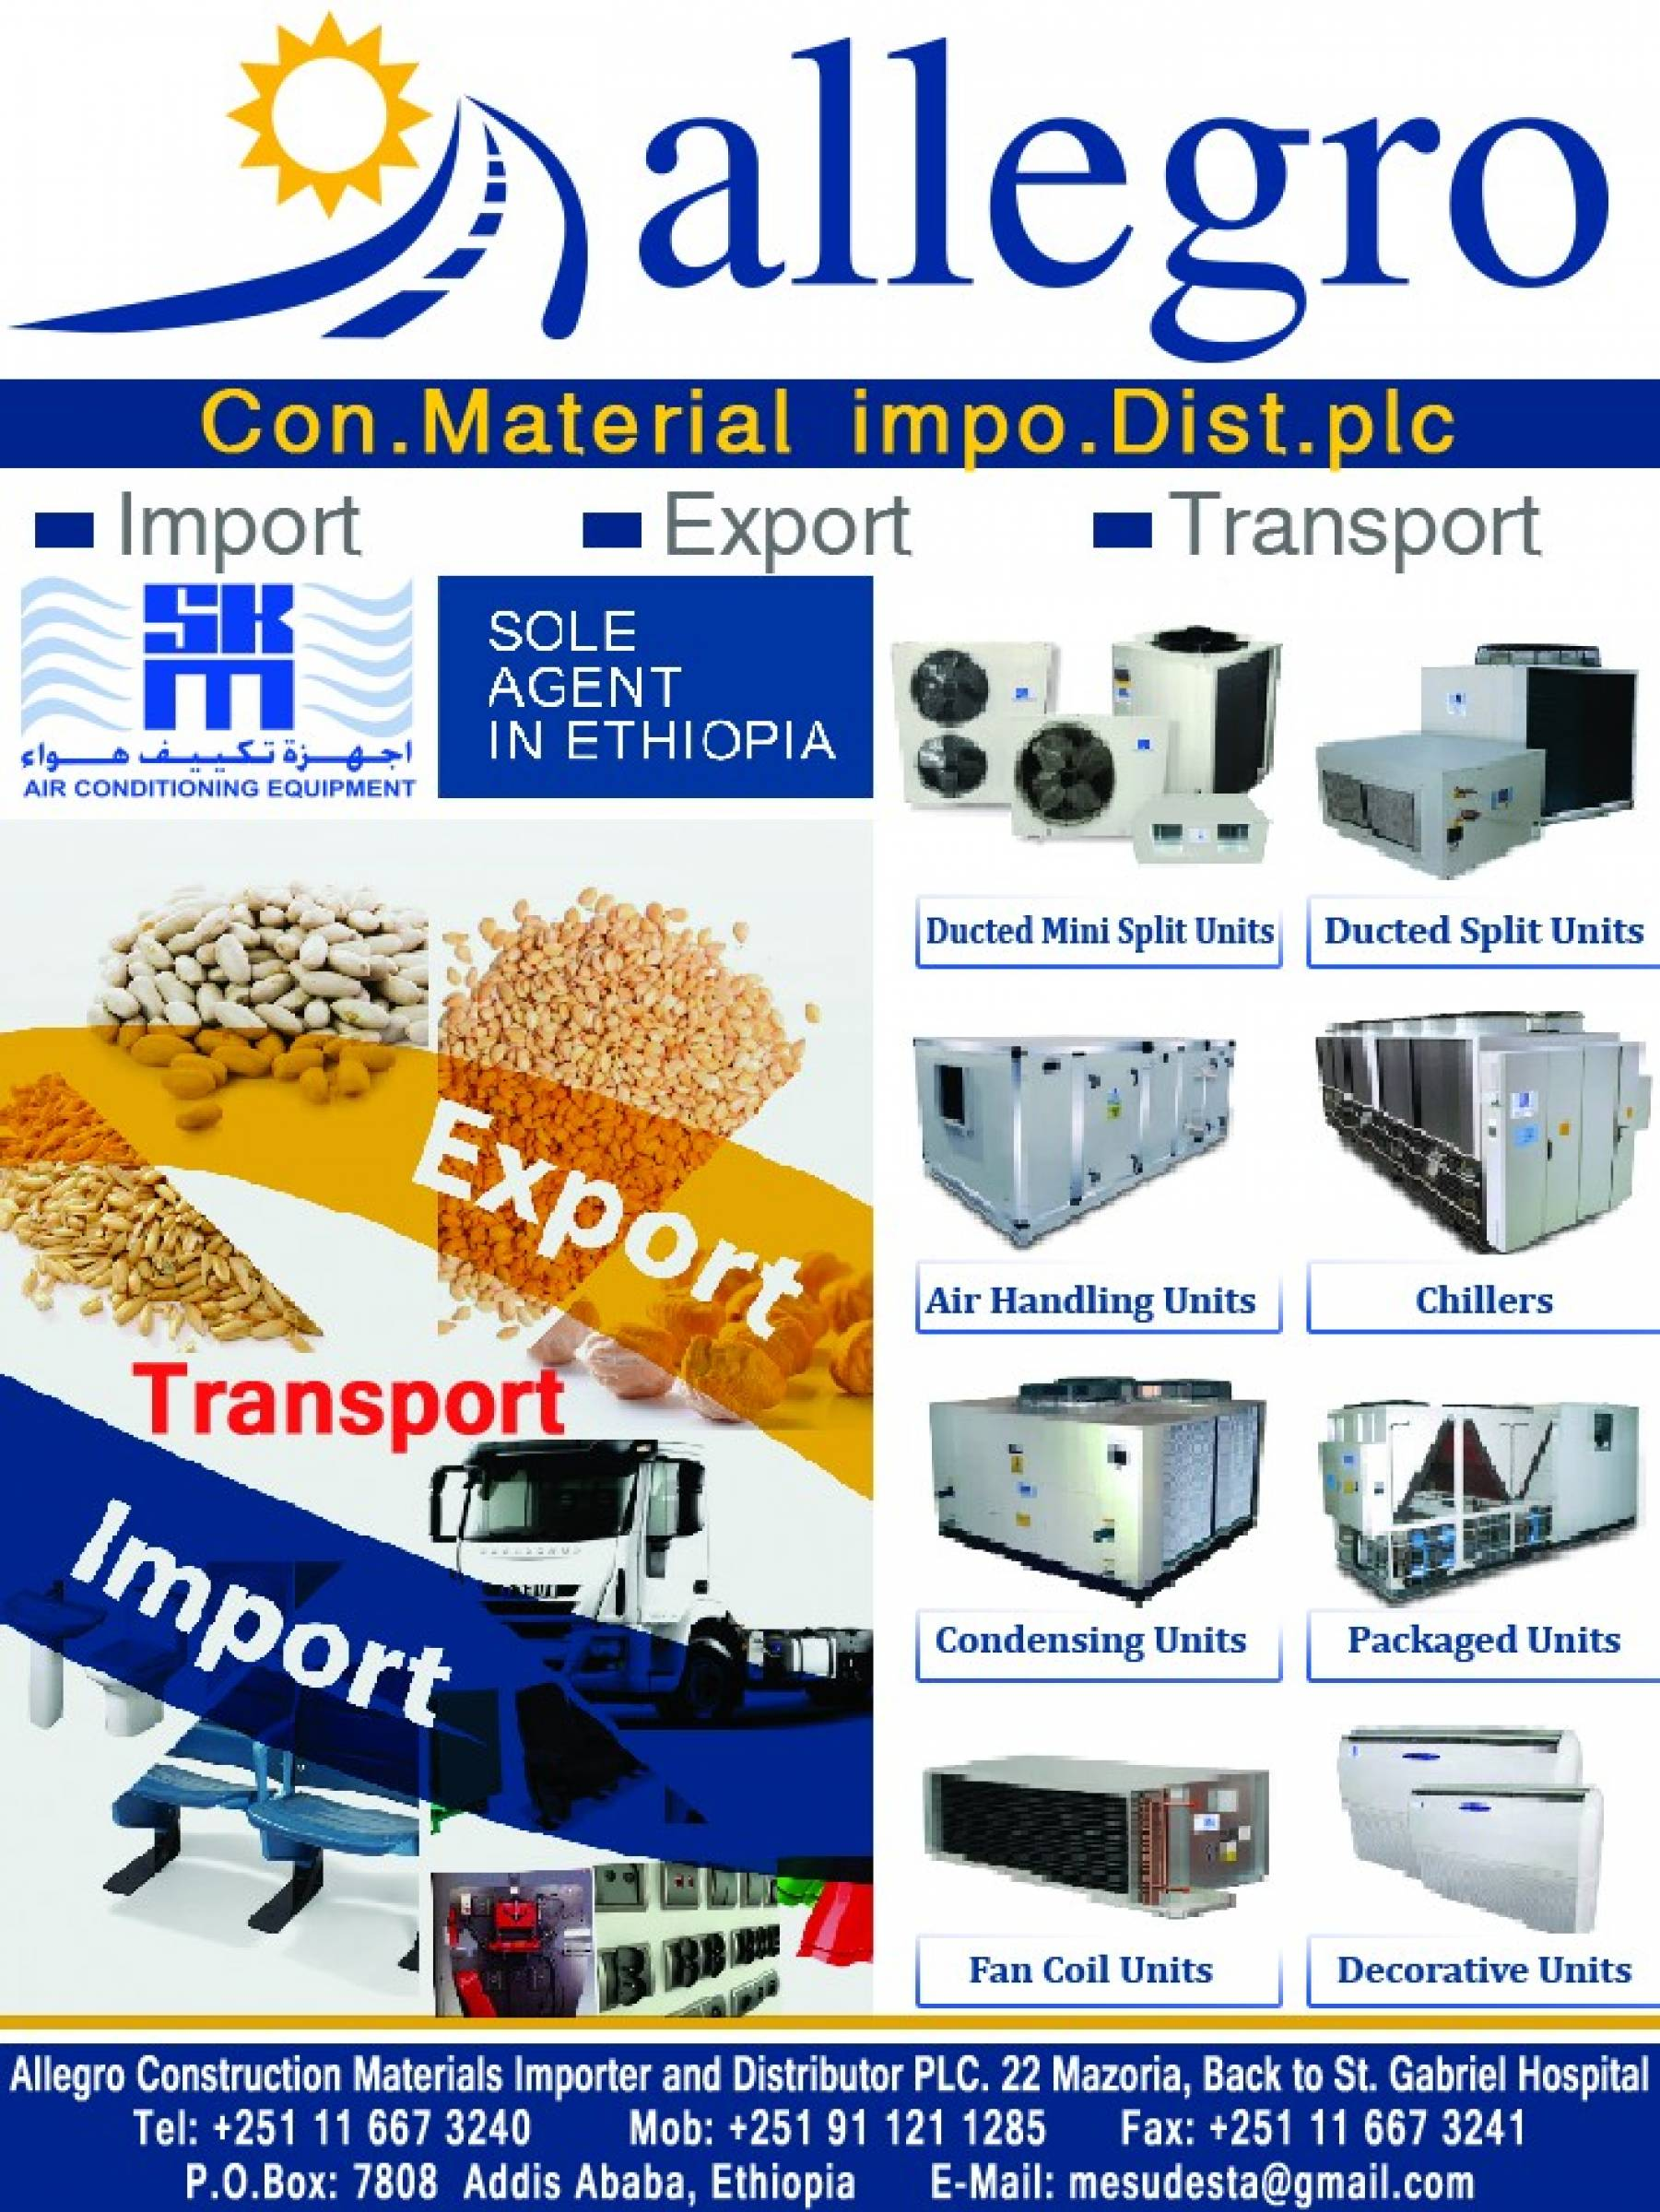 Allegro Construction Materials Importer and Distributor PLC